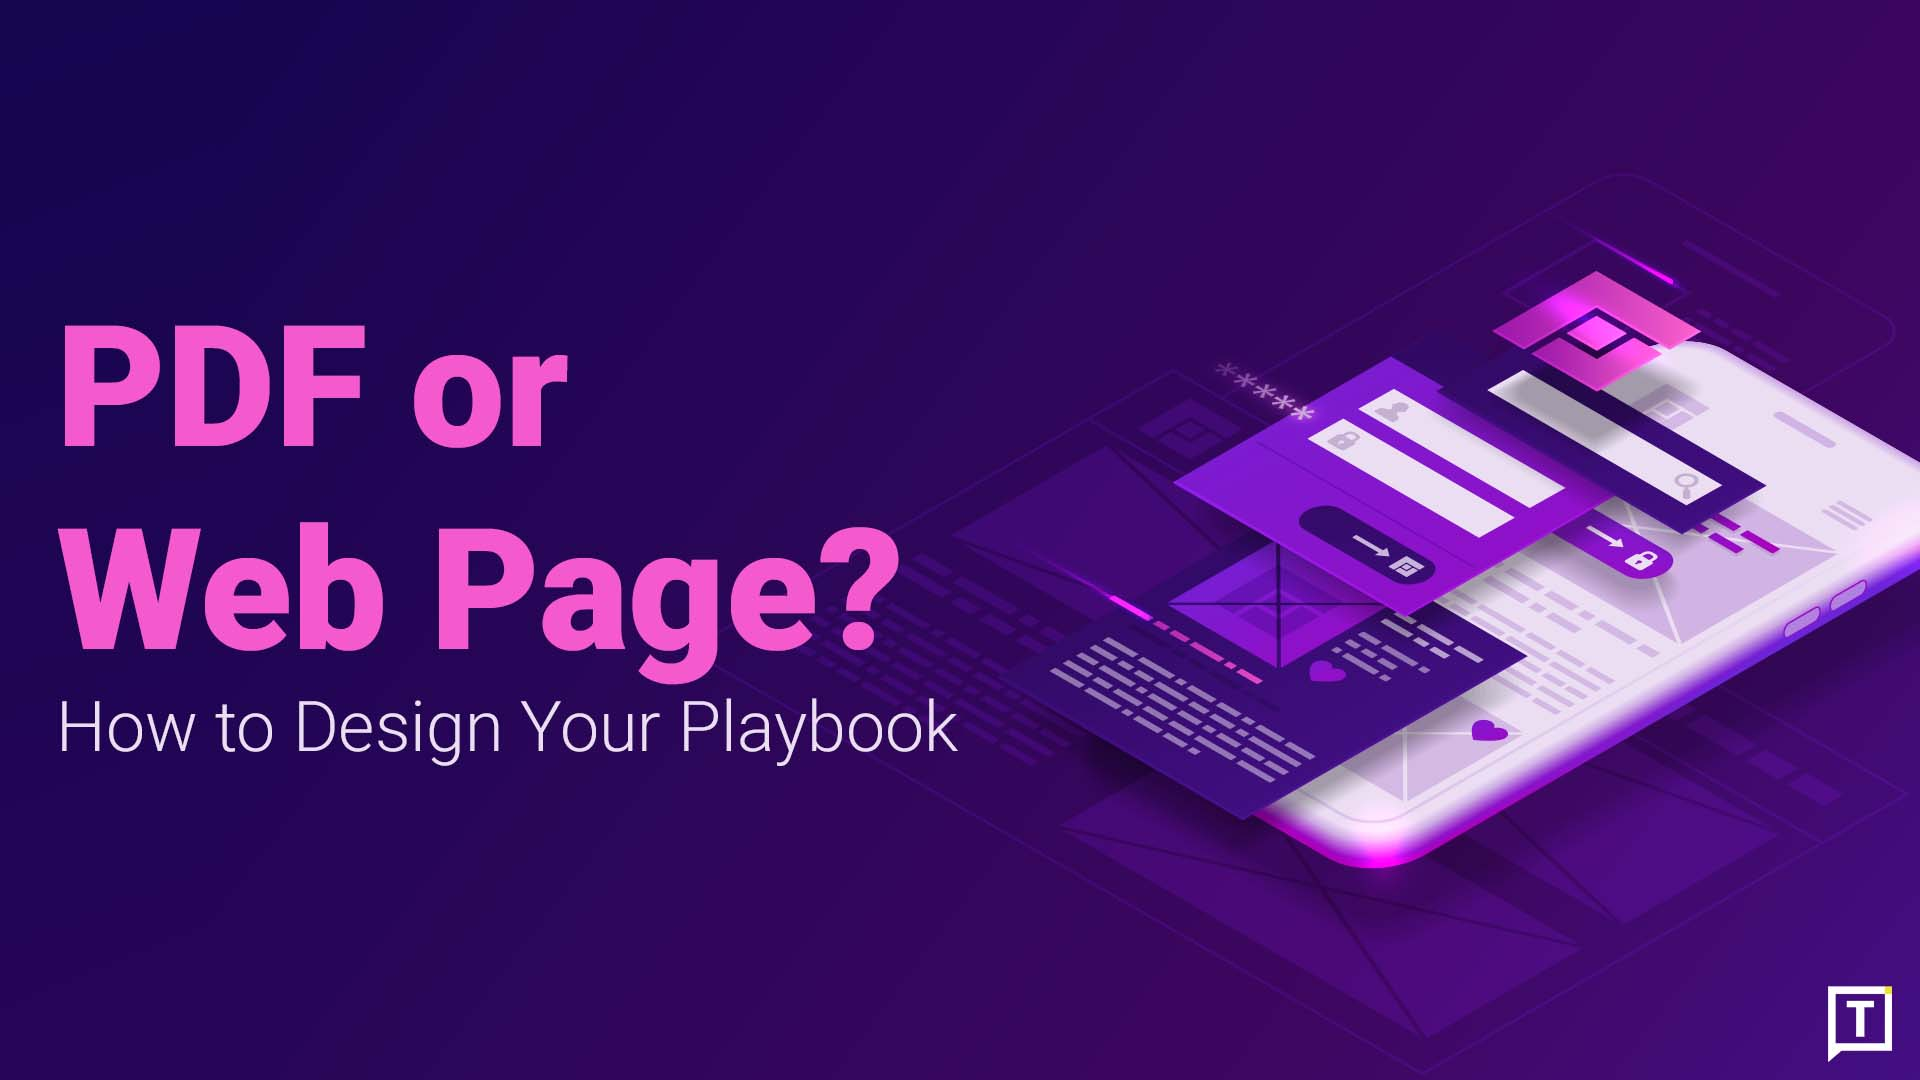 how to design a playbook cover image